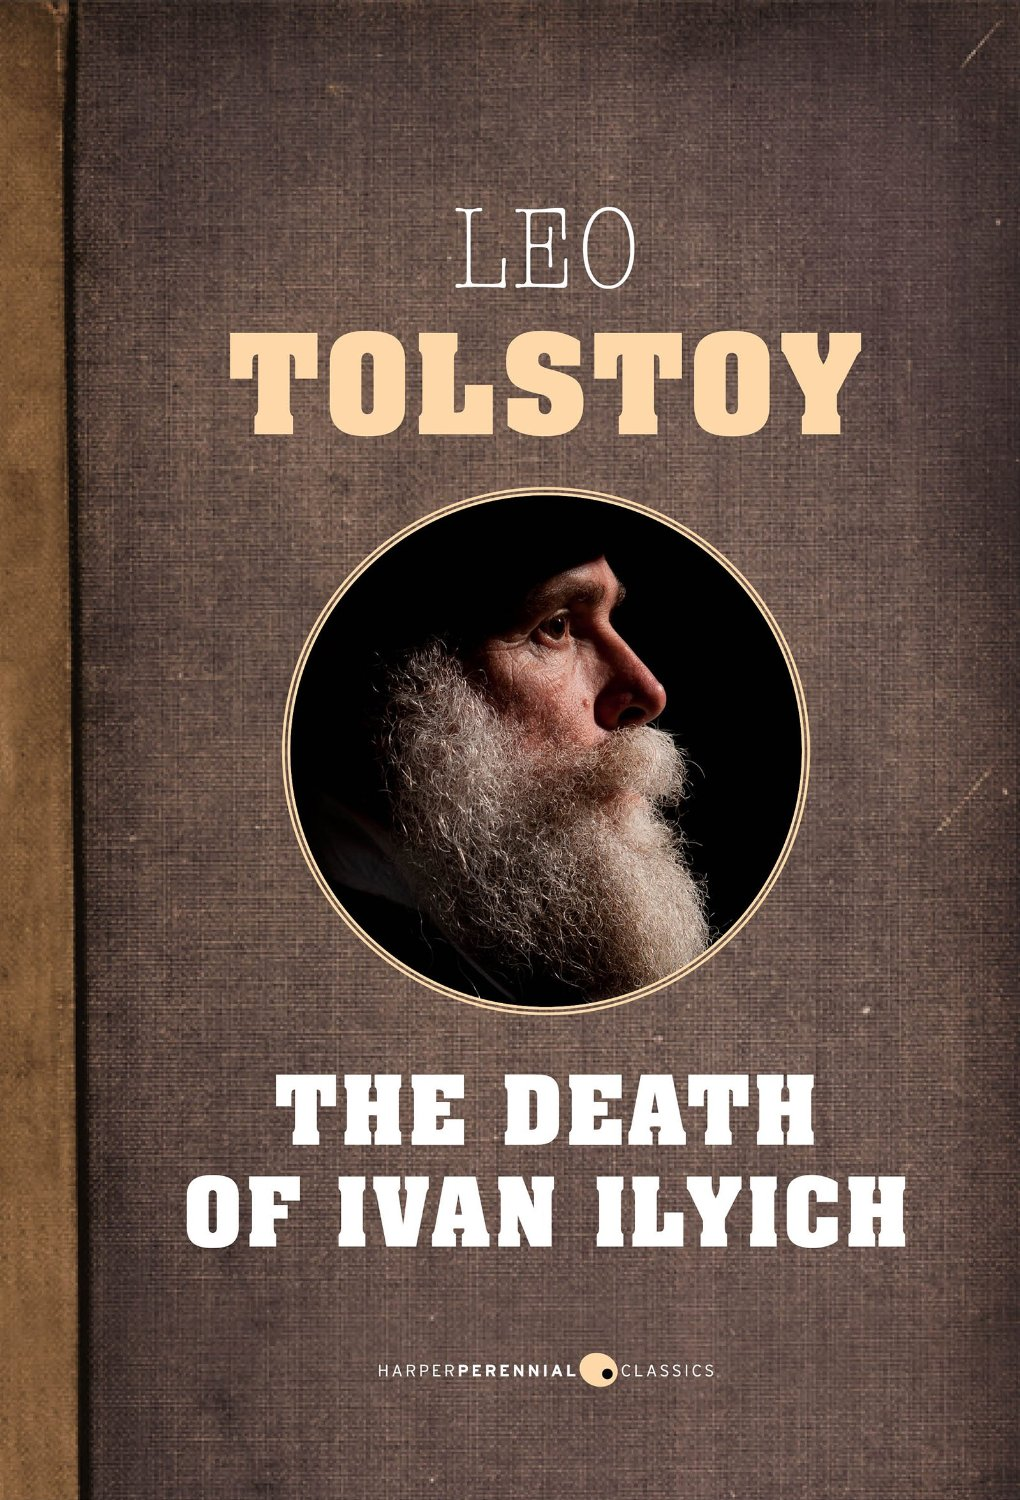 thesis on the death of ivan ilych Ivan ilych's life had been most simple and most ordinary and therefore most terrible as frankl writes, the ordinary life, one of self-interest and the existential vacuum, is a form of hell 8.